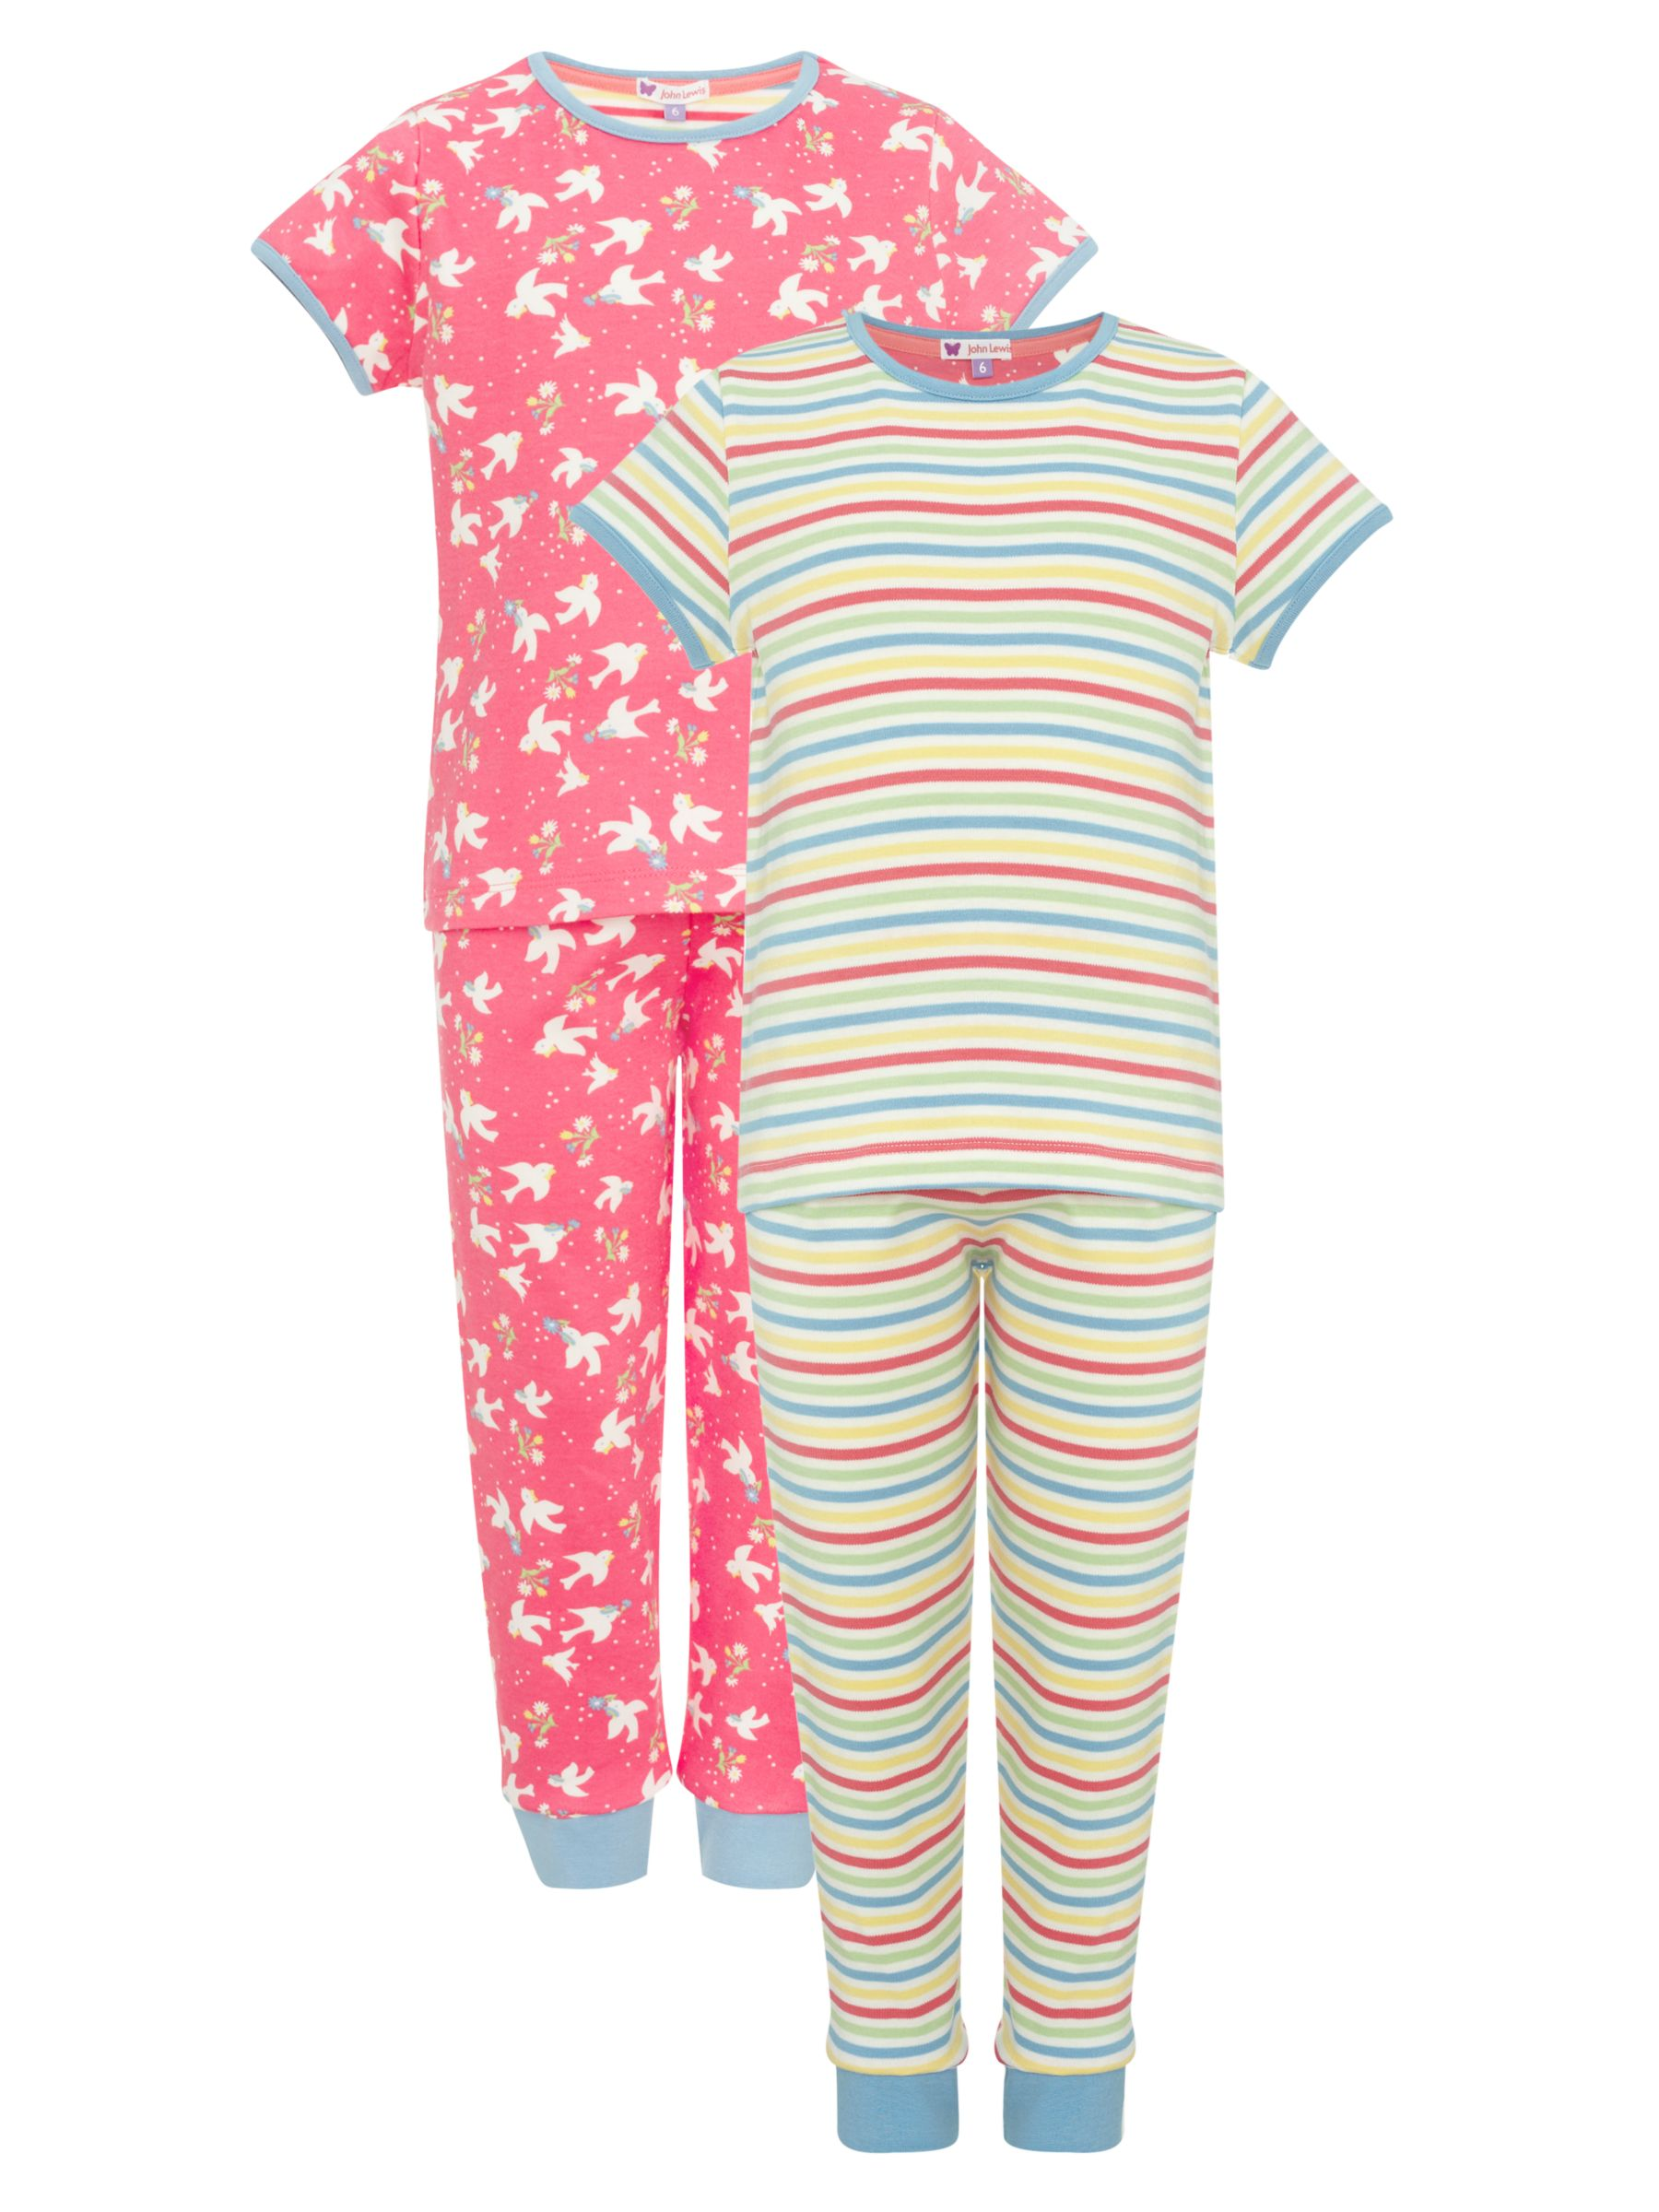 John Lewis Girl Short Sleeve Bird and Stripe Pyjamas, Pack of 2, Pink